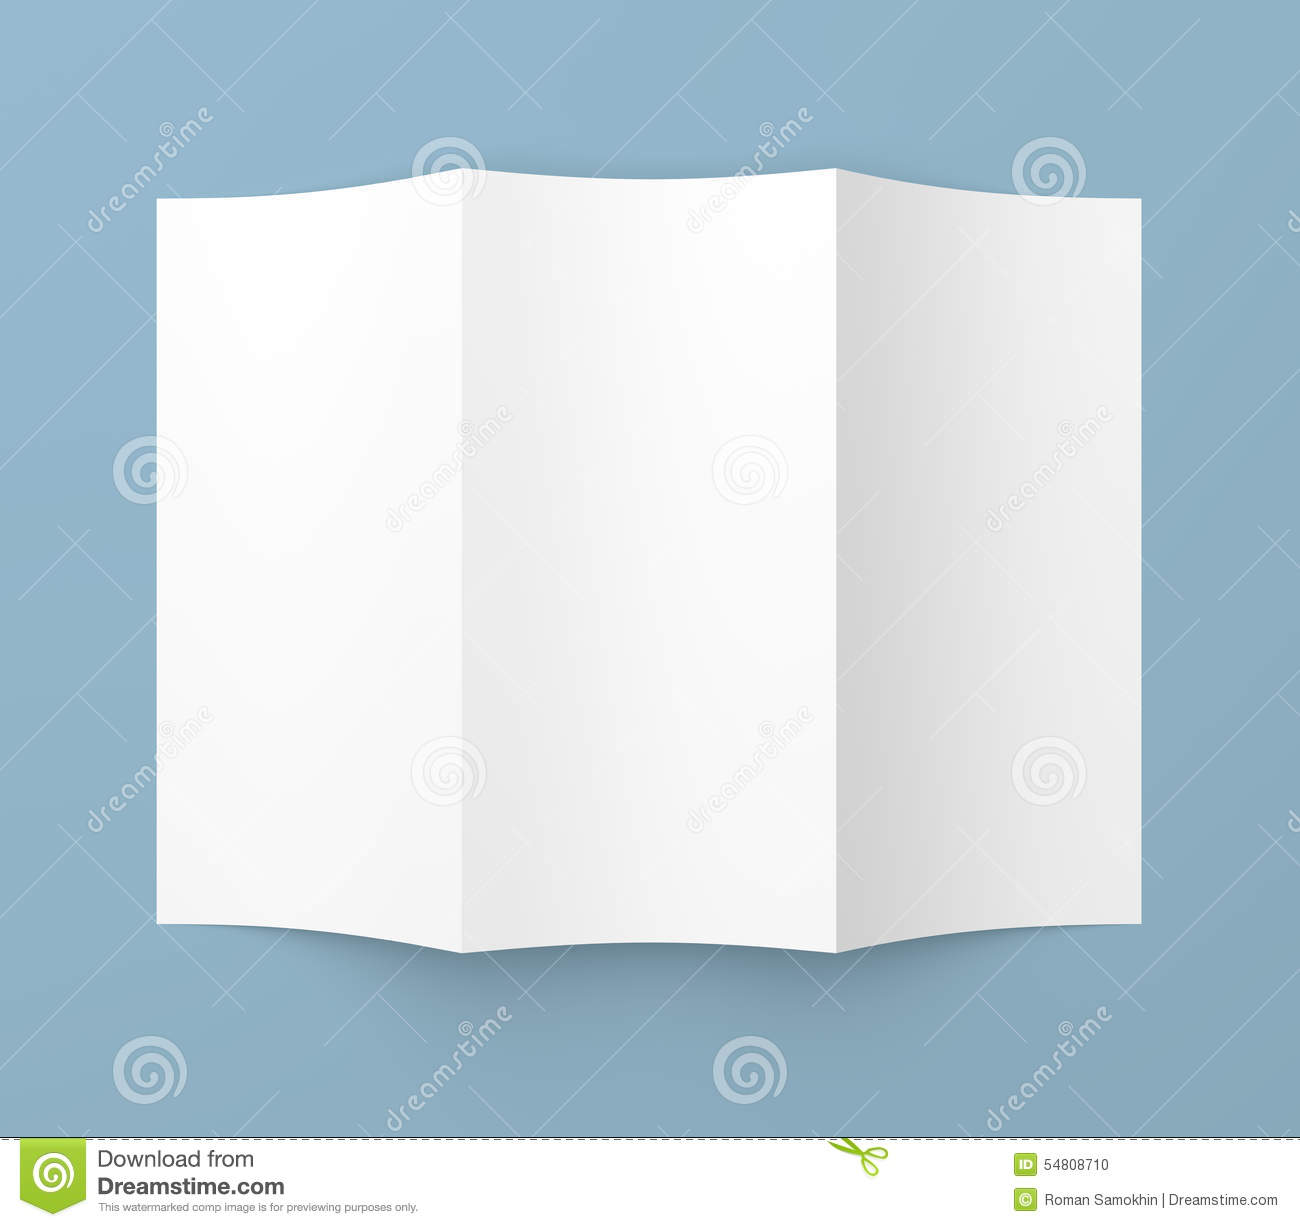 beautiful of how do you make a trifold brochure to tri fold in